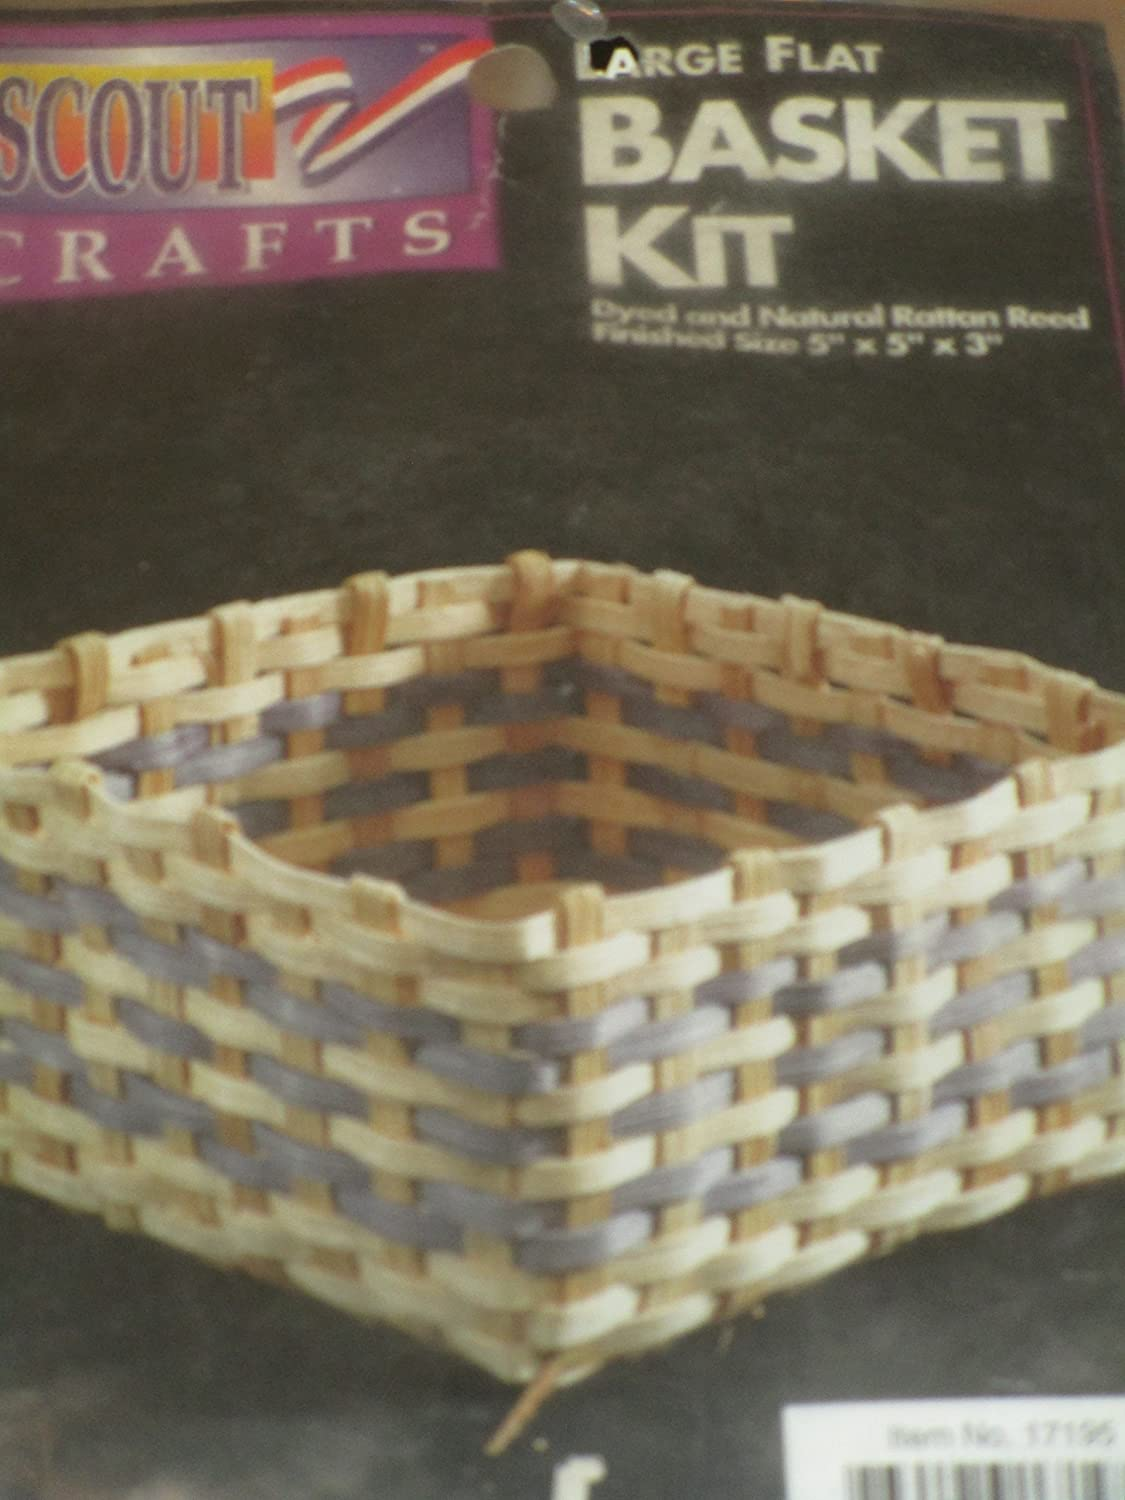 Large Flat Basket Kit ... Dyed and Natural Rattan Reed ... Finished Size 5' x 5' x 3' Scott Crafts